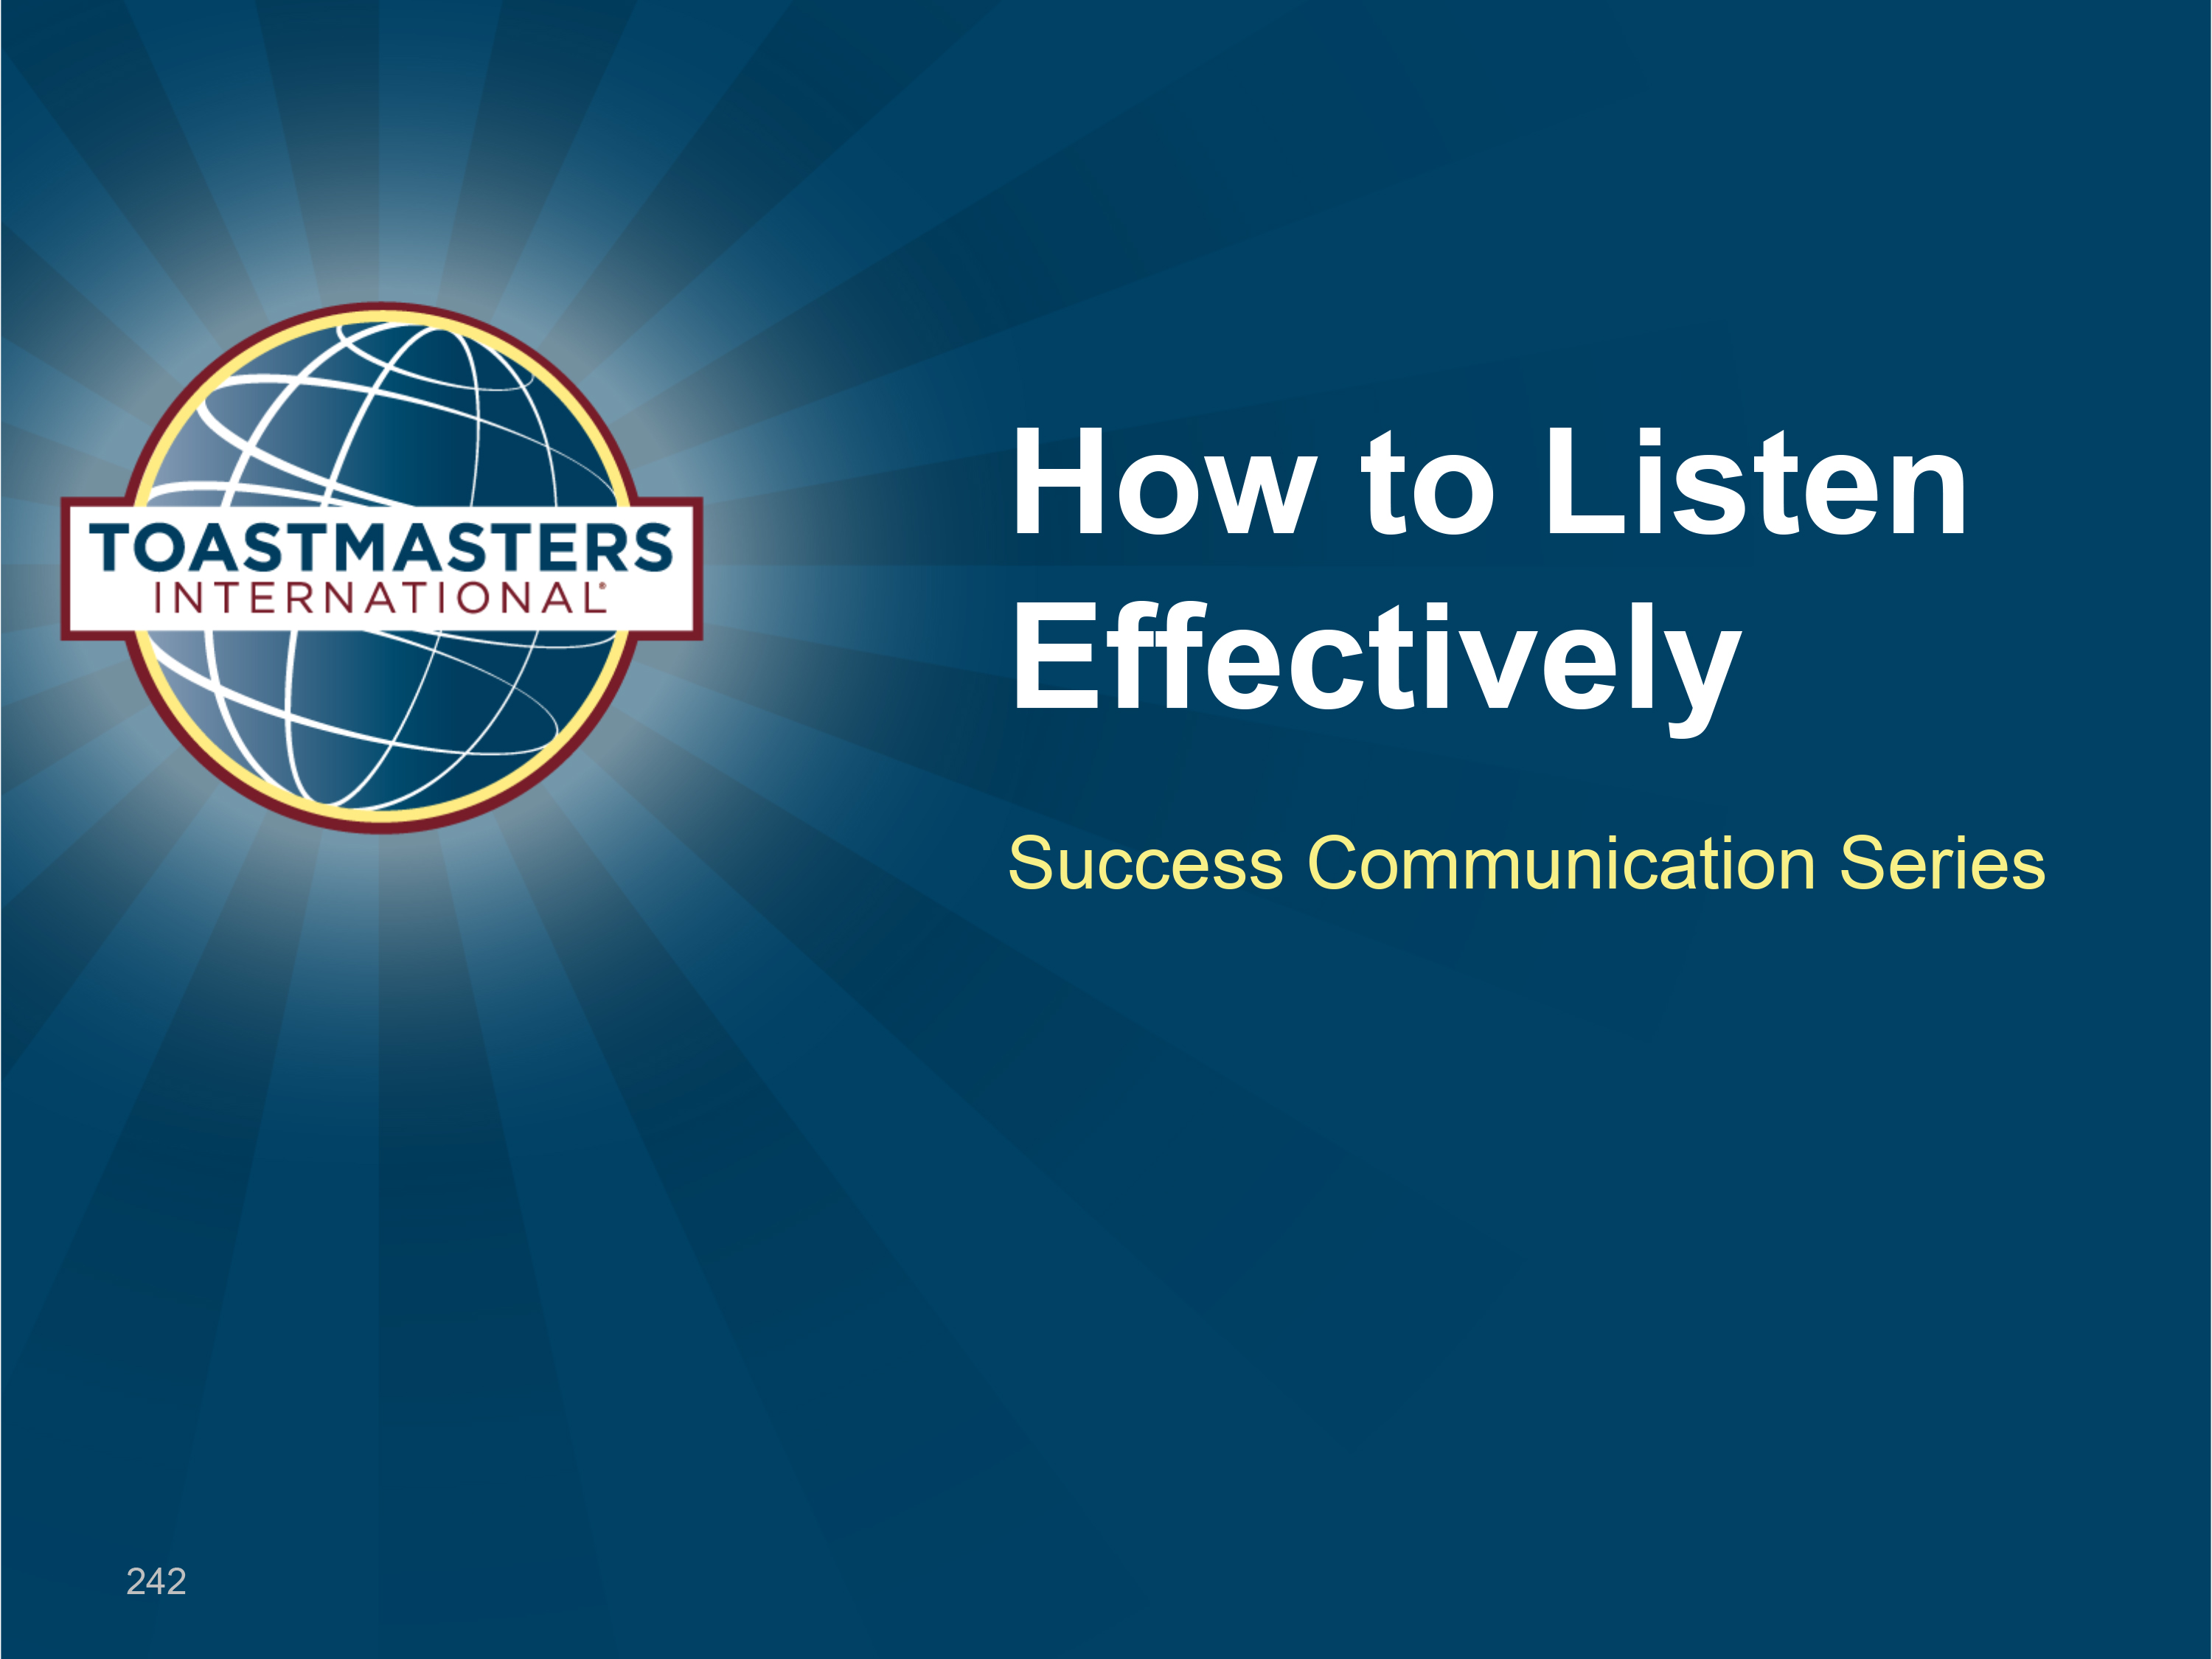 How to Listen Effectively Workshop (PPT)